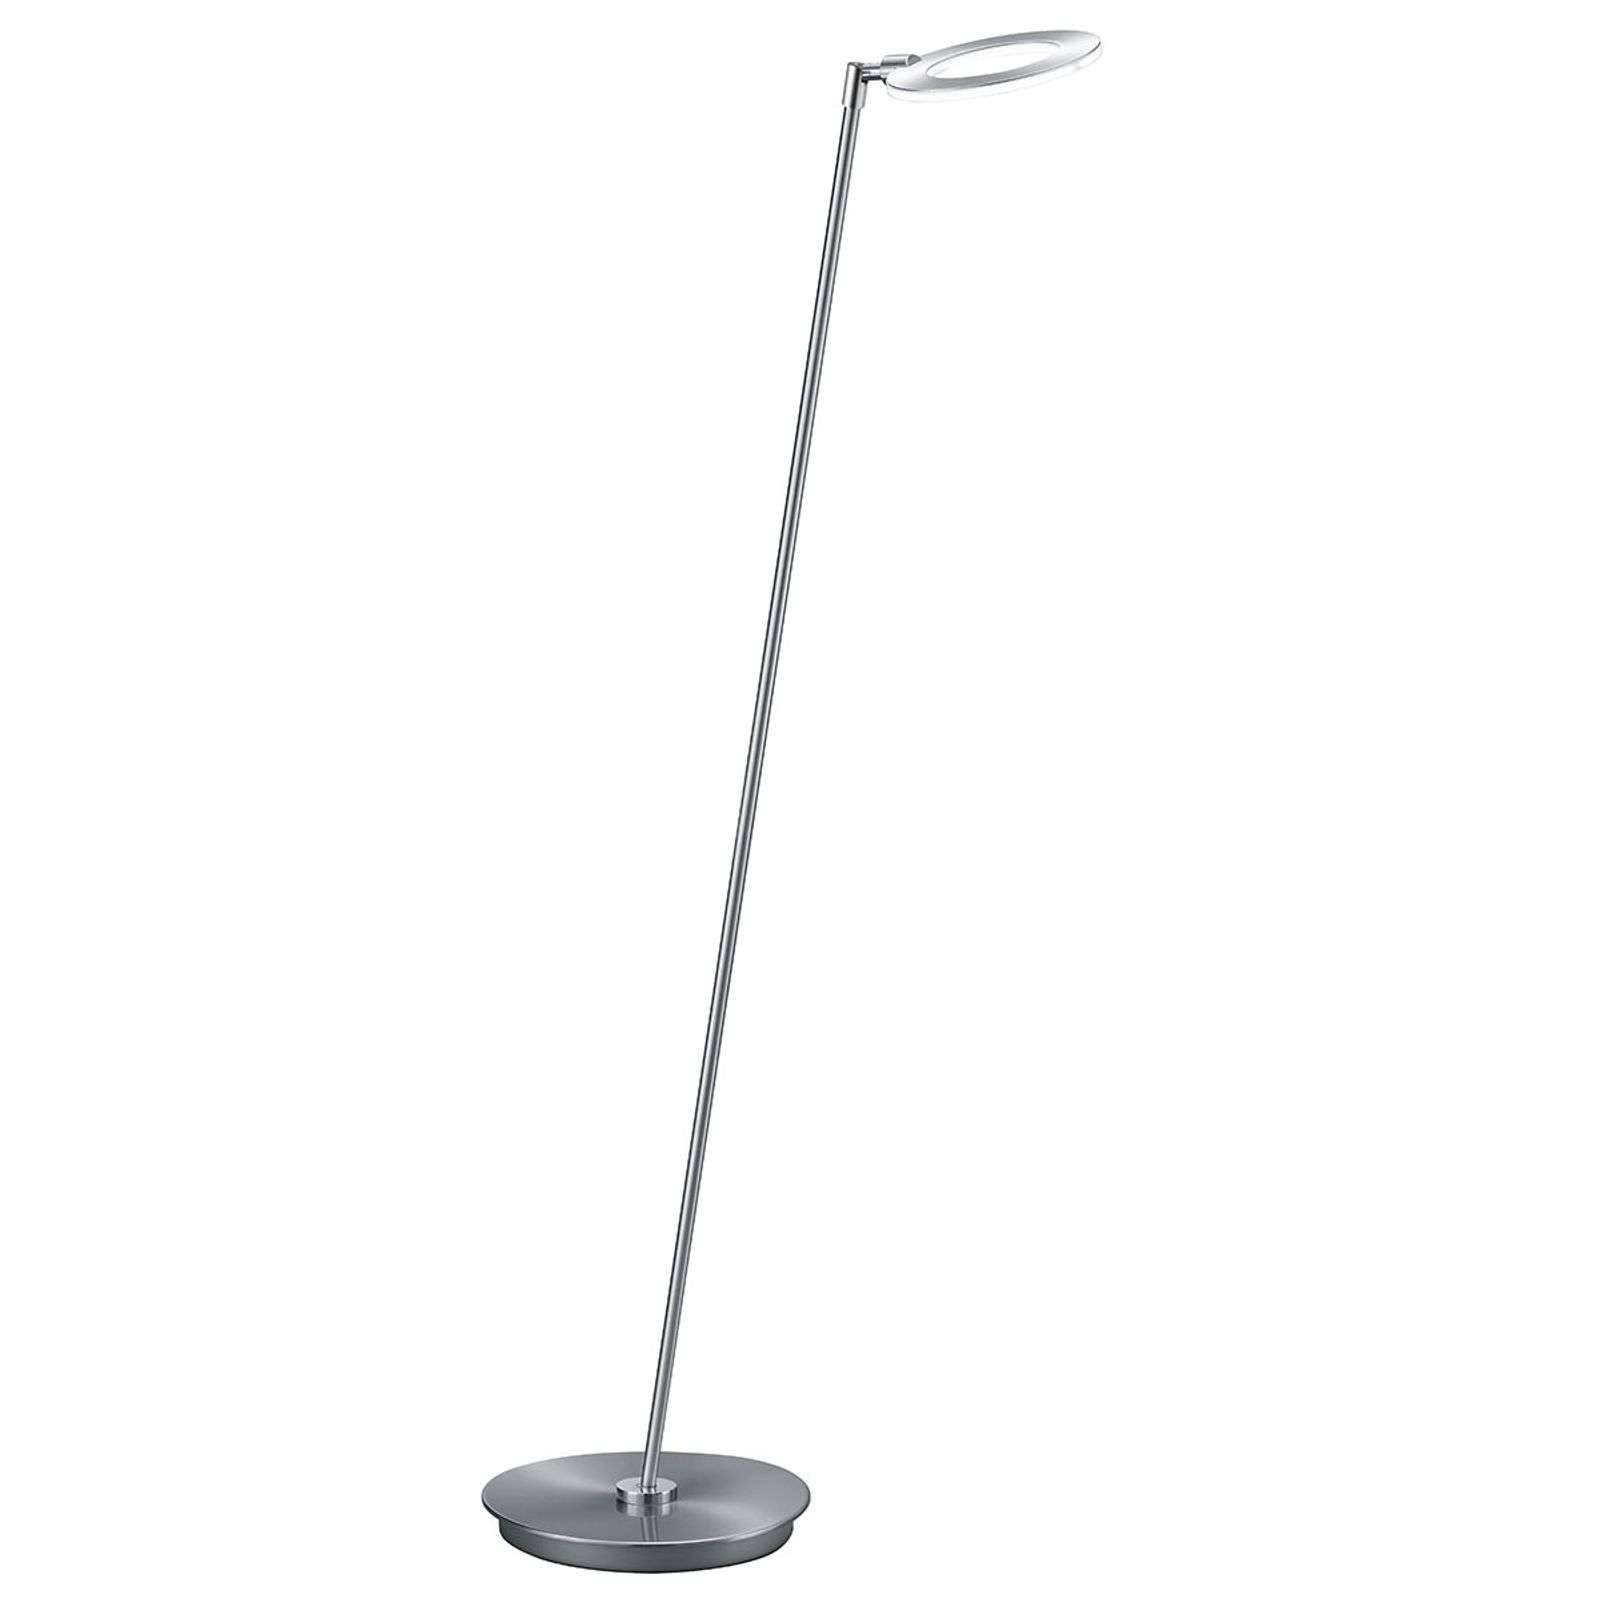 Lampadaire LED Mica dimmable, orientation flexible